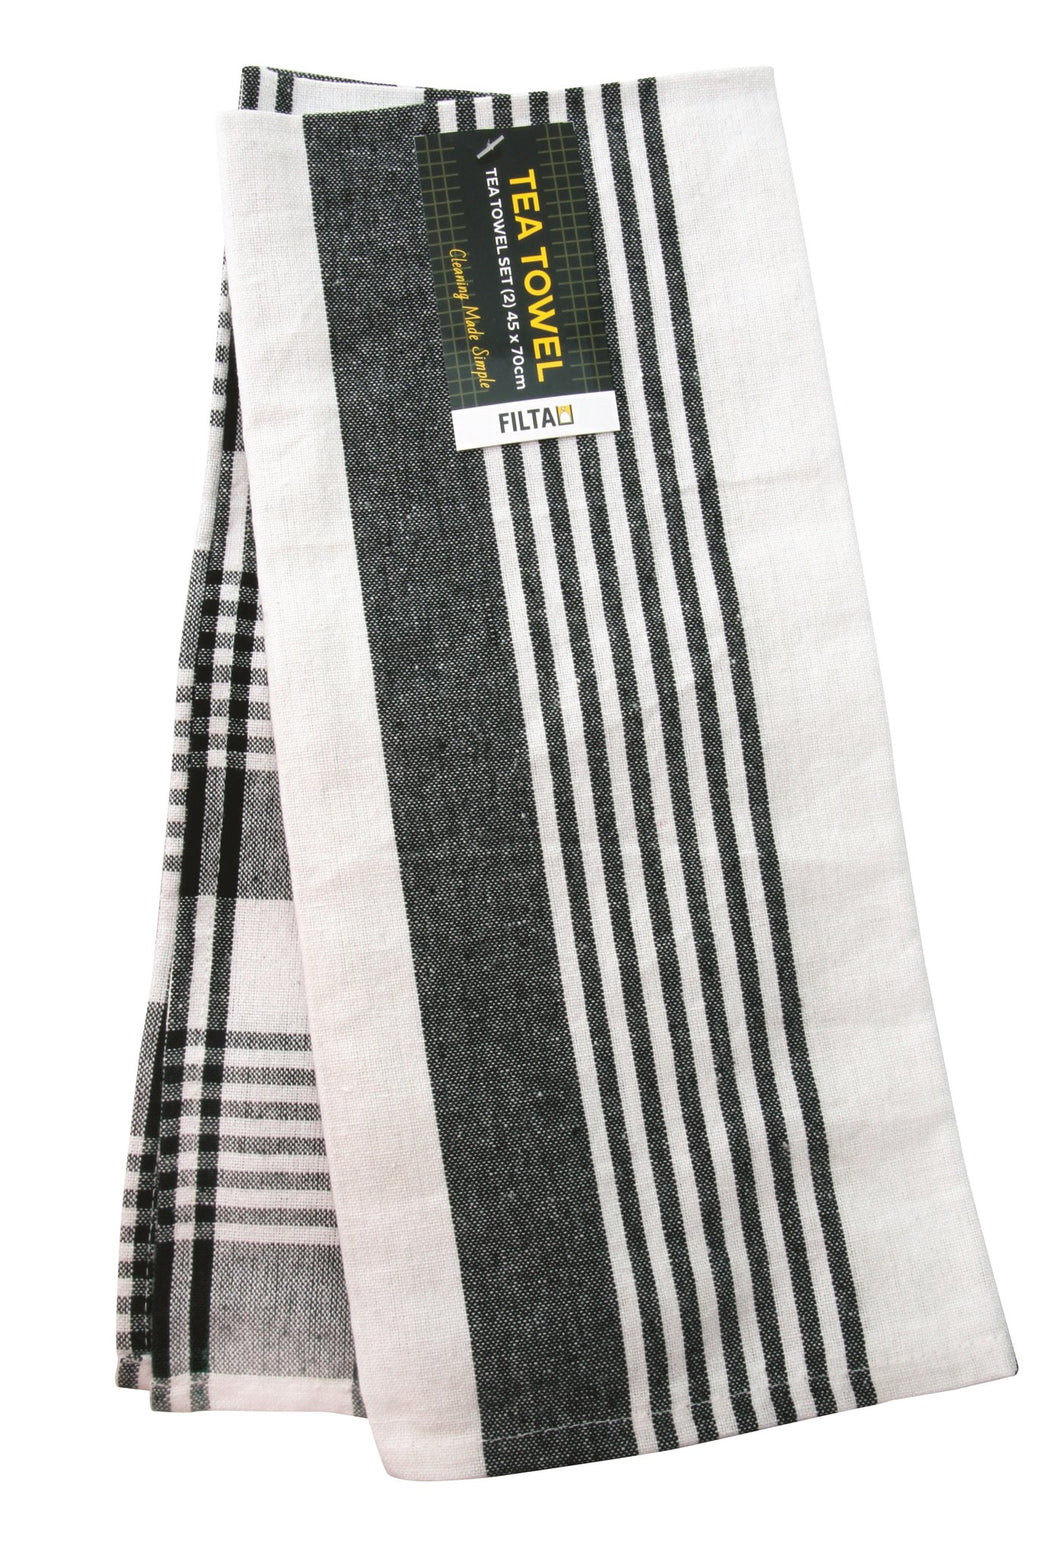 Cotton Tea Towels Black 2 pack 450 x 700mm 31001